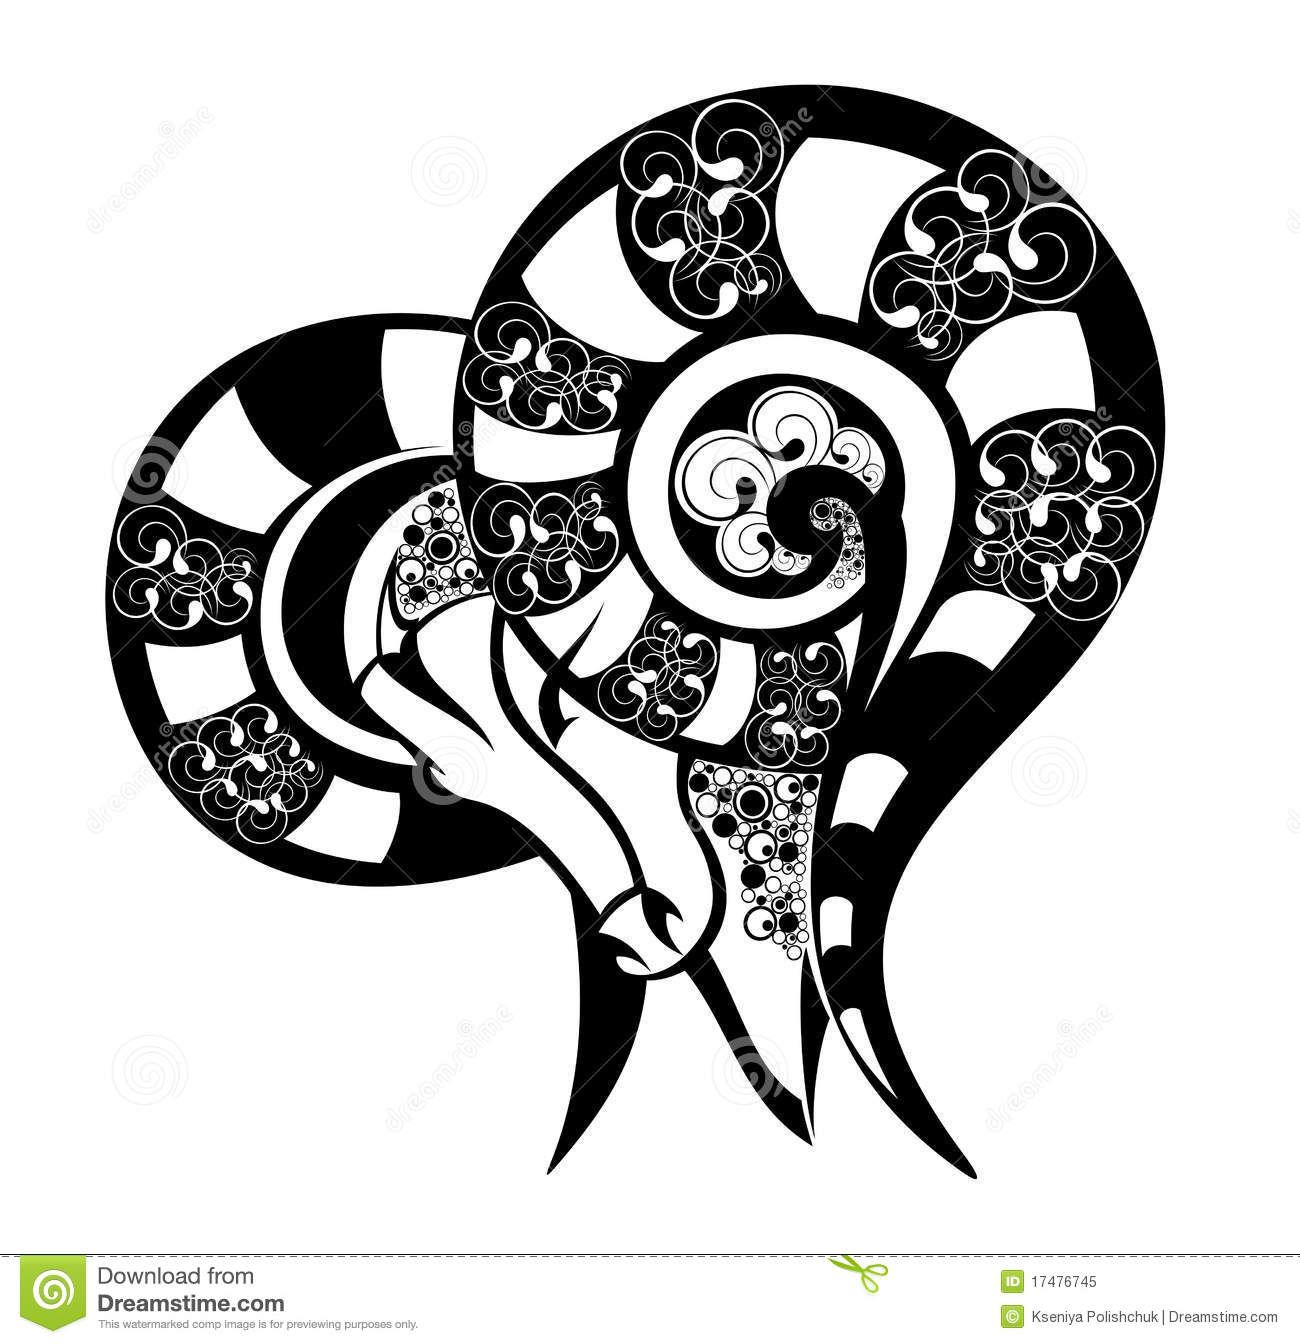 Zodiac signs horoscope art google search entrep house 35 free but awesome aries tattoo designs for your inspiration the meaning of aries tattoos biocorpaavc